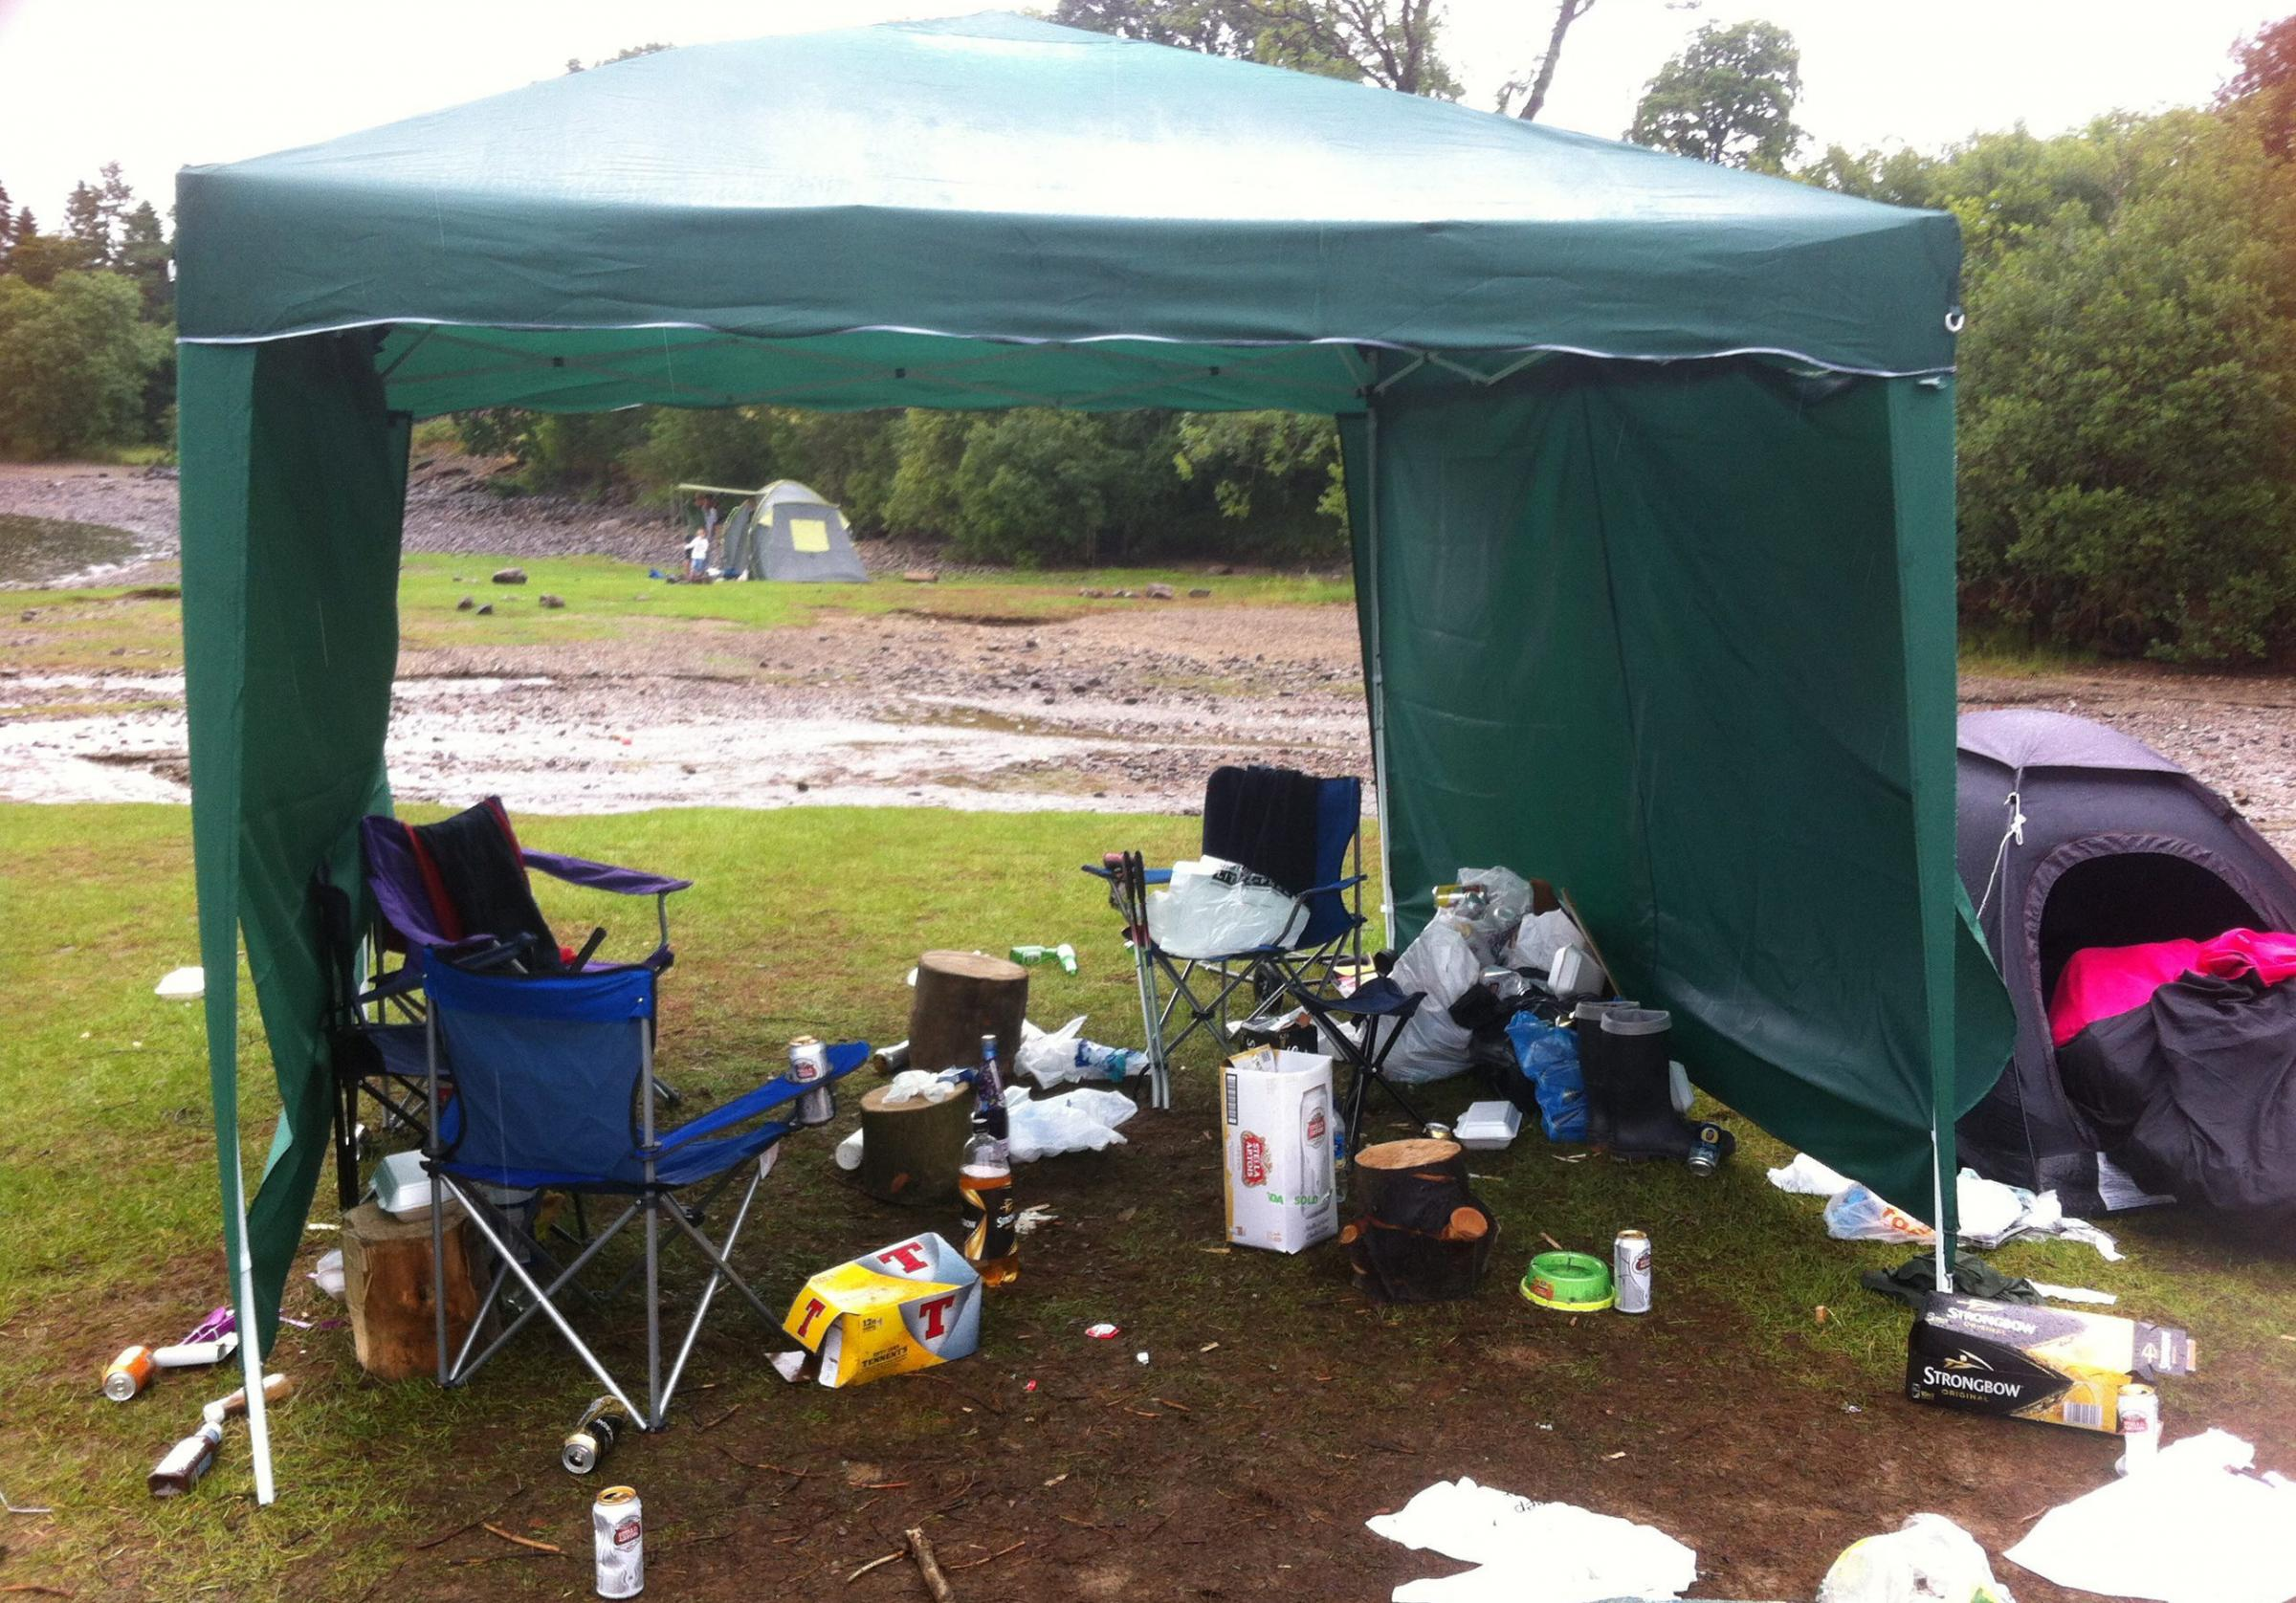 The camping rules are intended to stop people ruining the park's natural environment